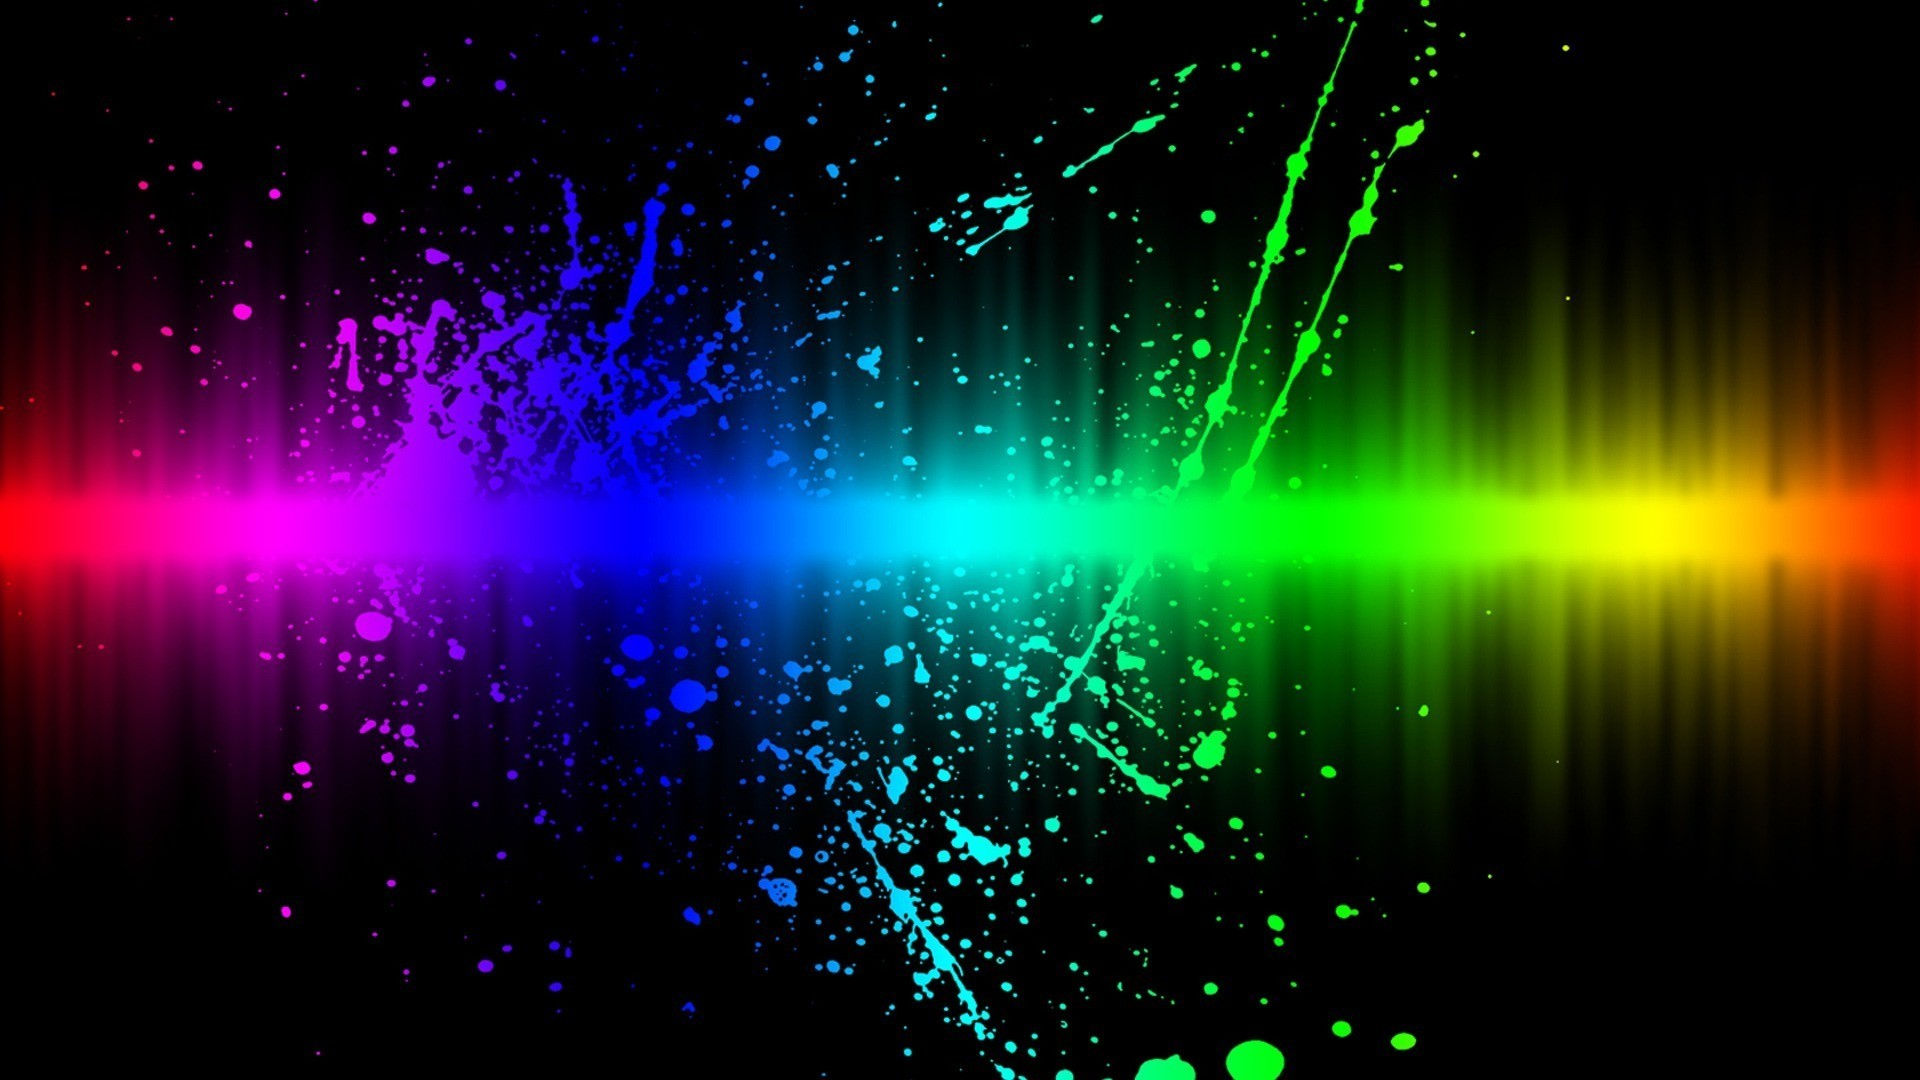 Wallpaper-Play-Of-Light-Color-Texture-Background-Widescreen-